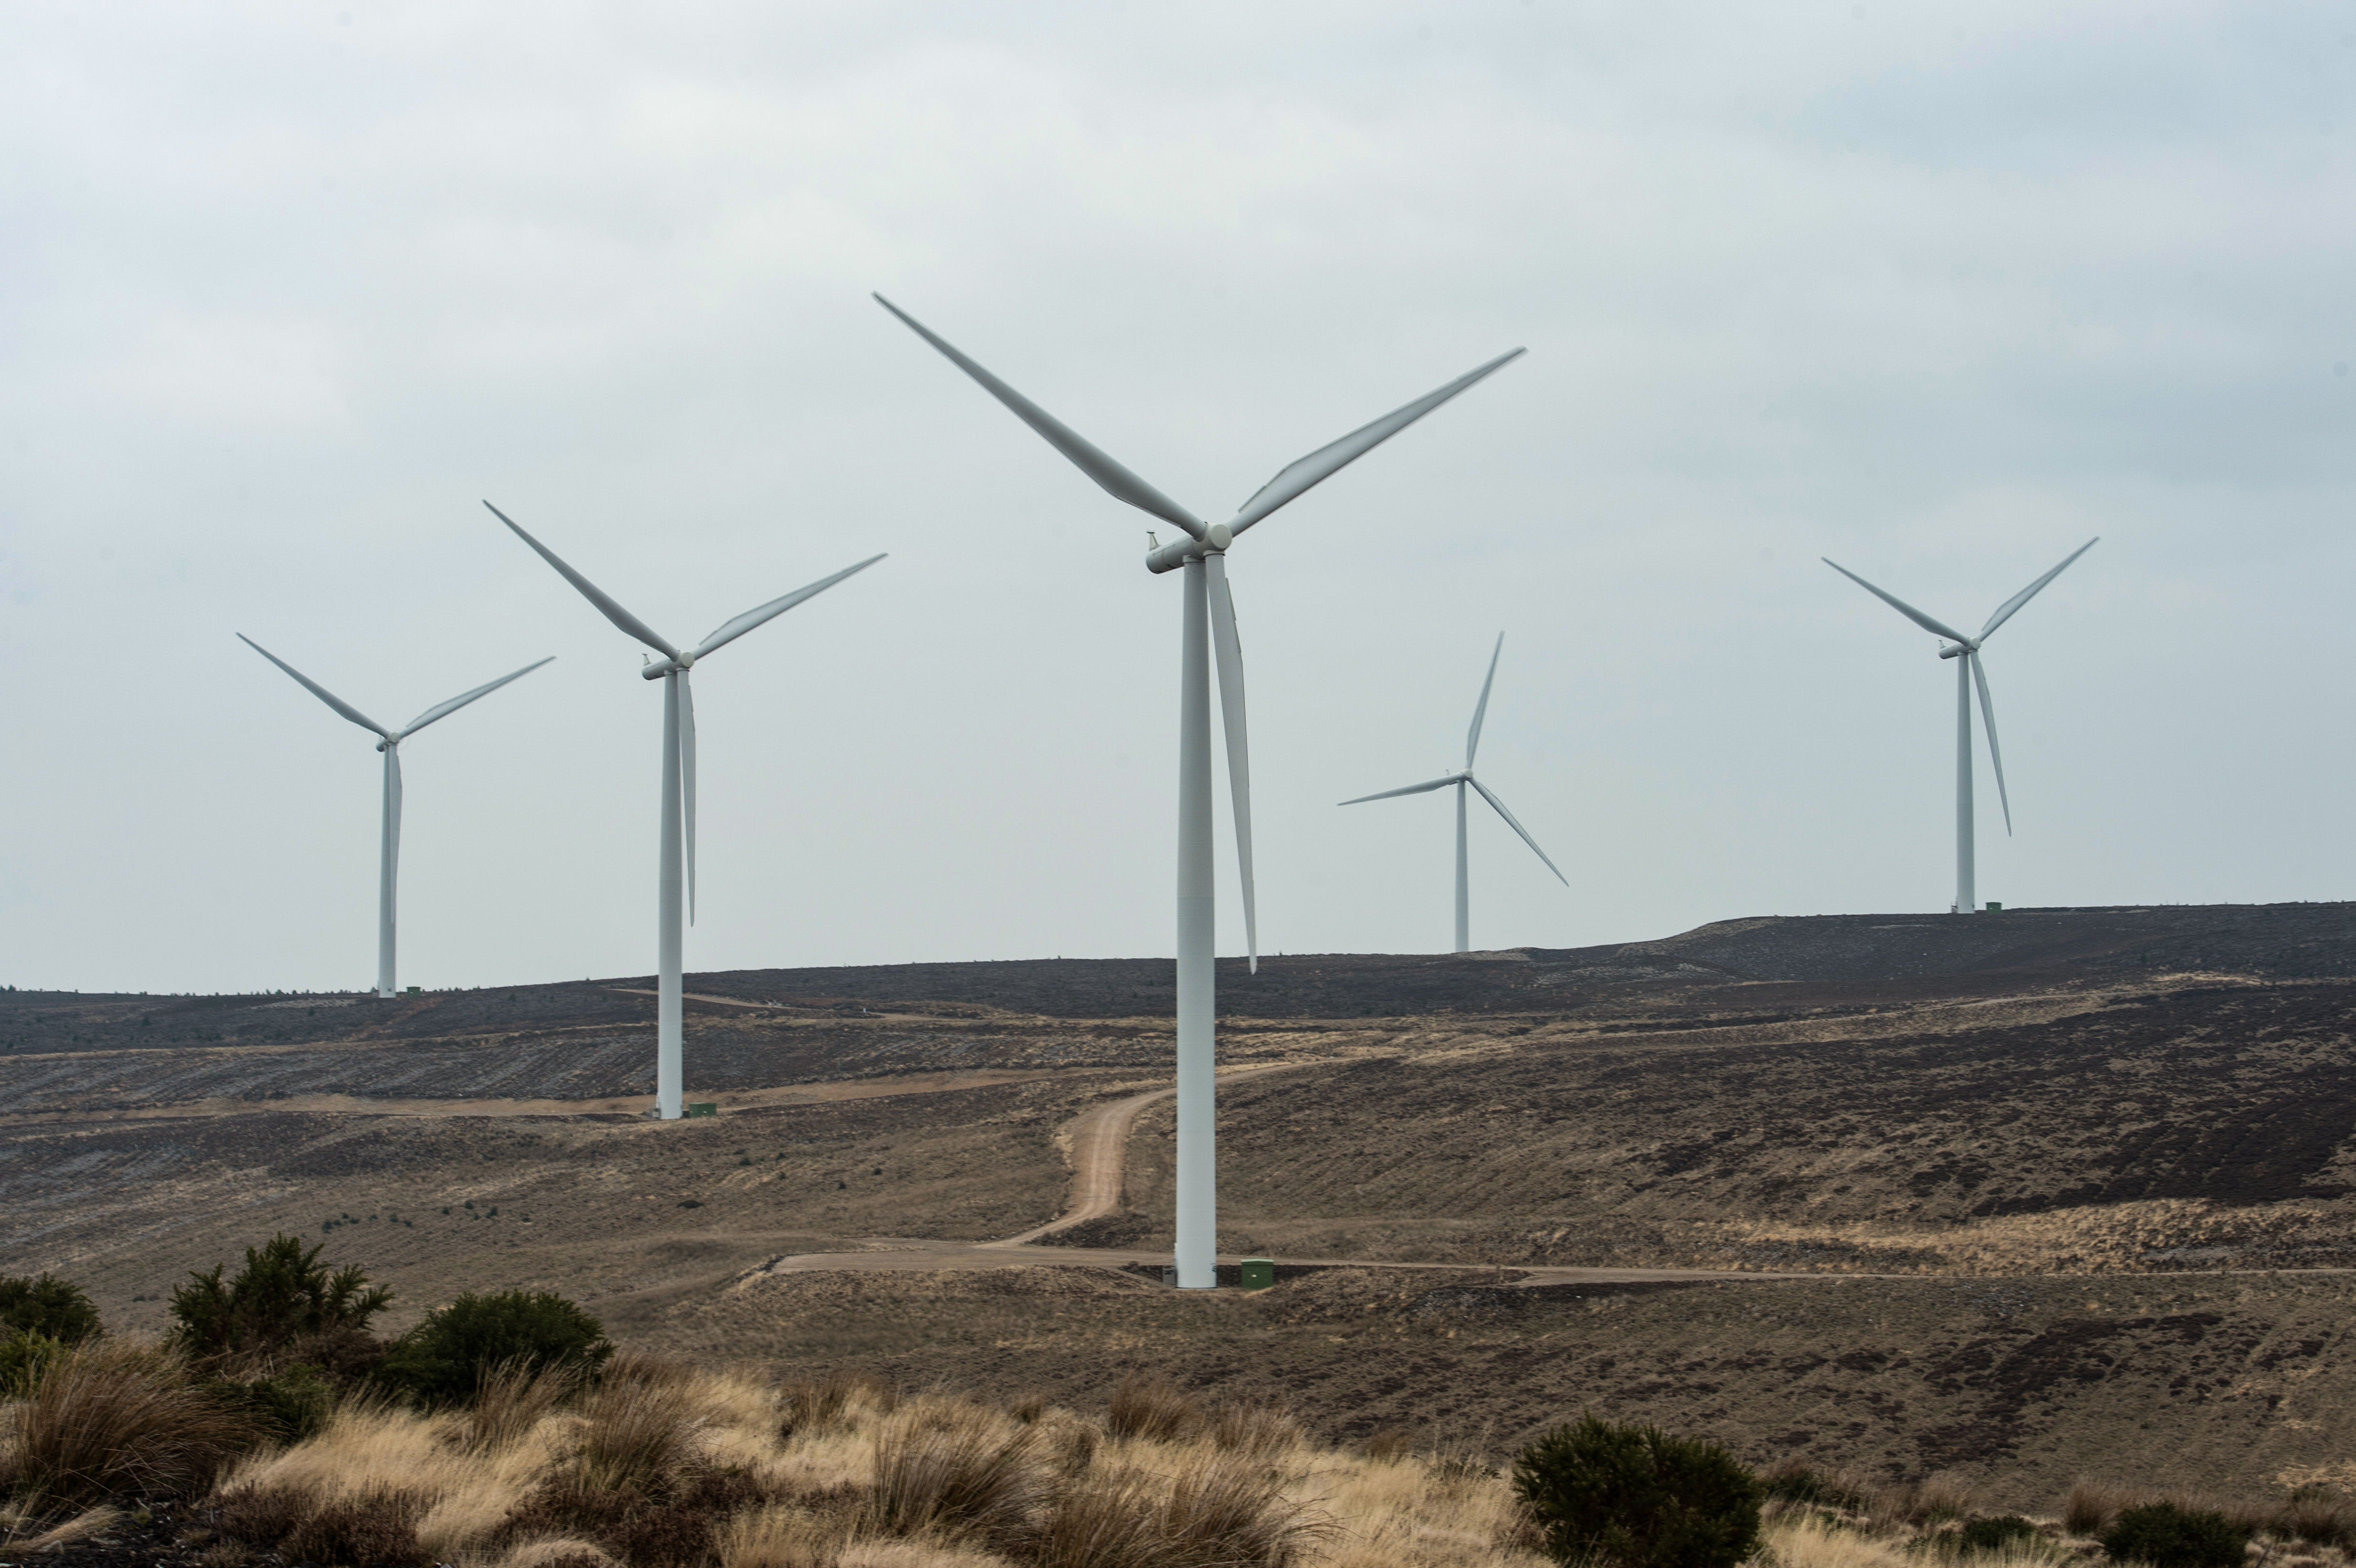 Pictures show Wind Turbines at Rothes Wind Farm, Moray. Pictures by Jason Hedges